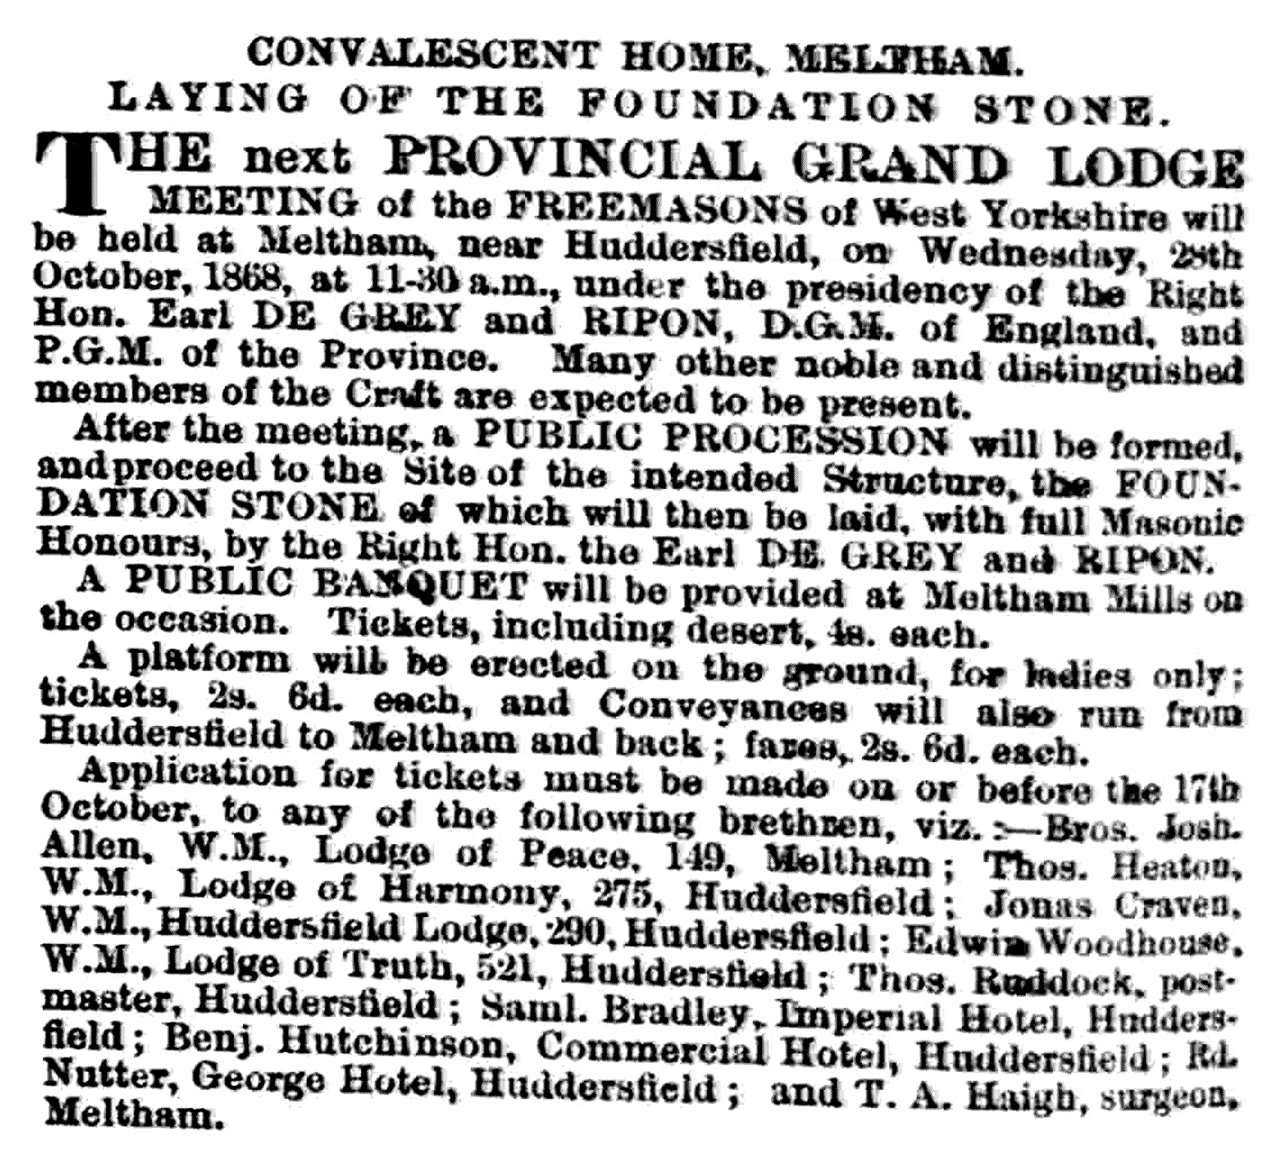 Huddersfield Chronicle 10 Oct 1868 Public Notices.png